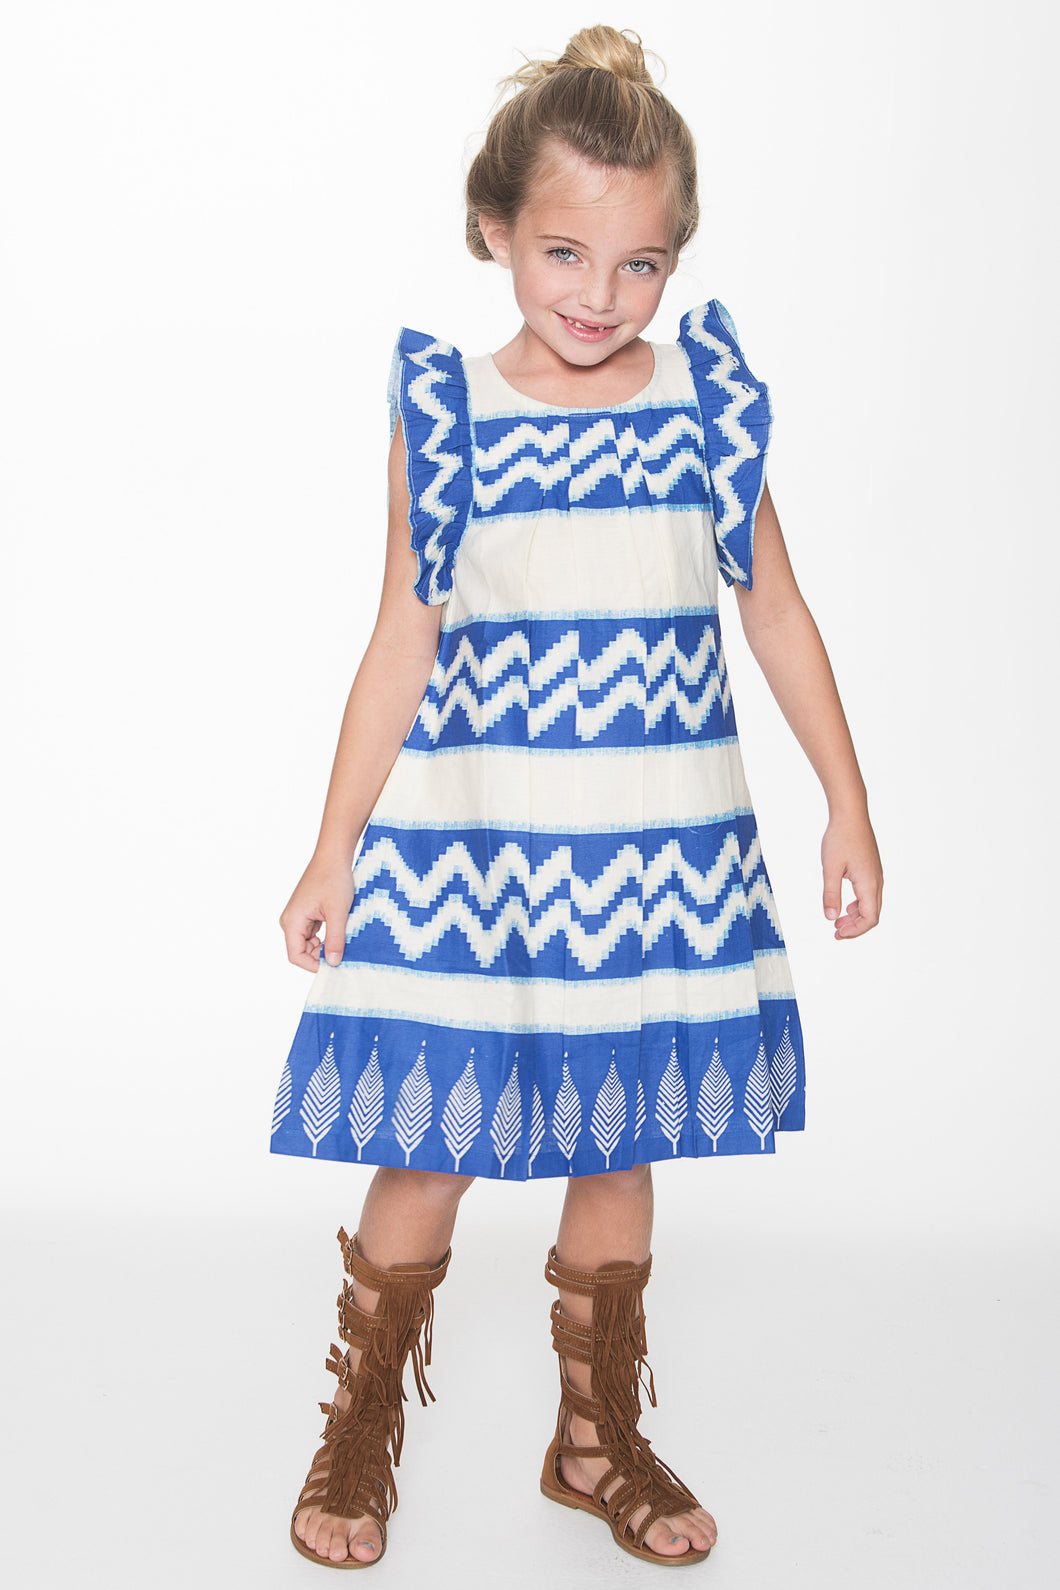 Blue Tribal Print Dress - Kids Clothing, Dress - Girls Dress, Yo Baby Online - Yo Baby